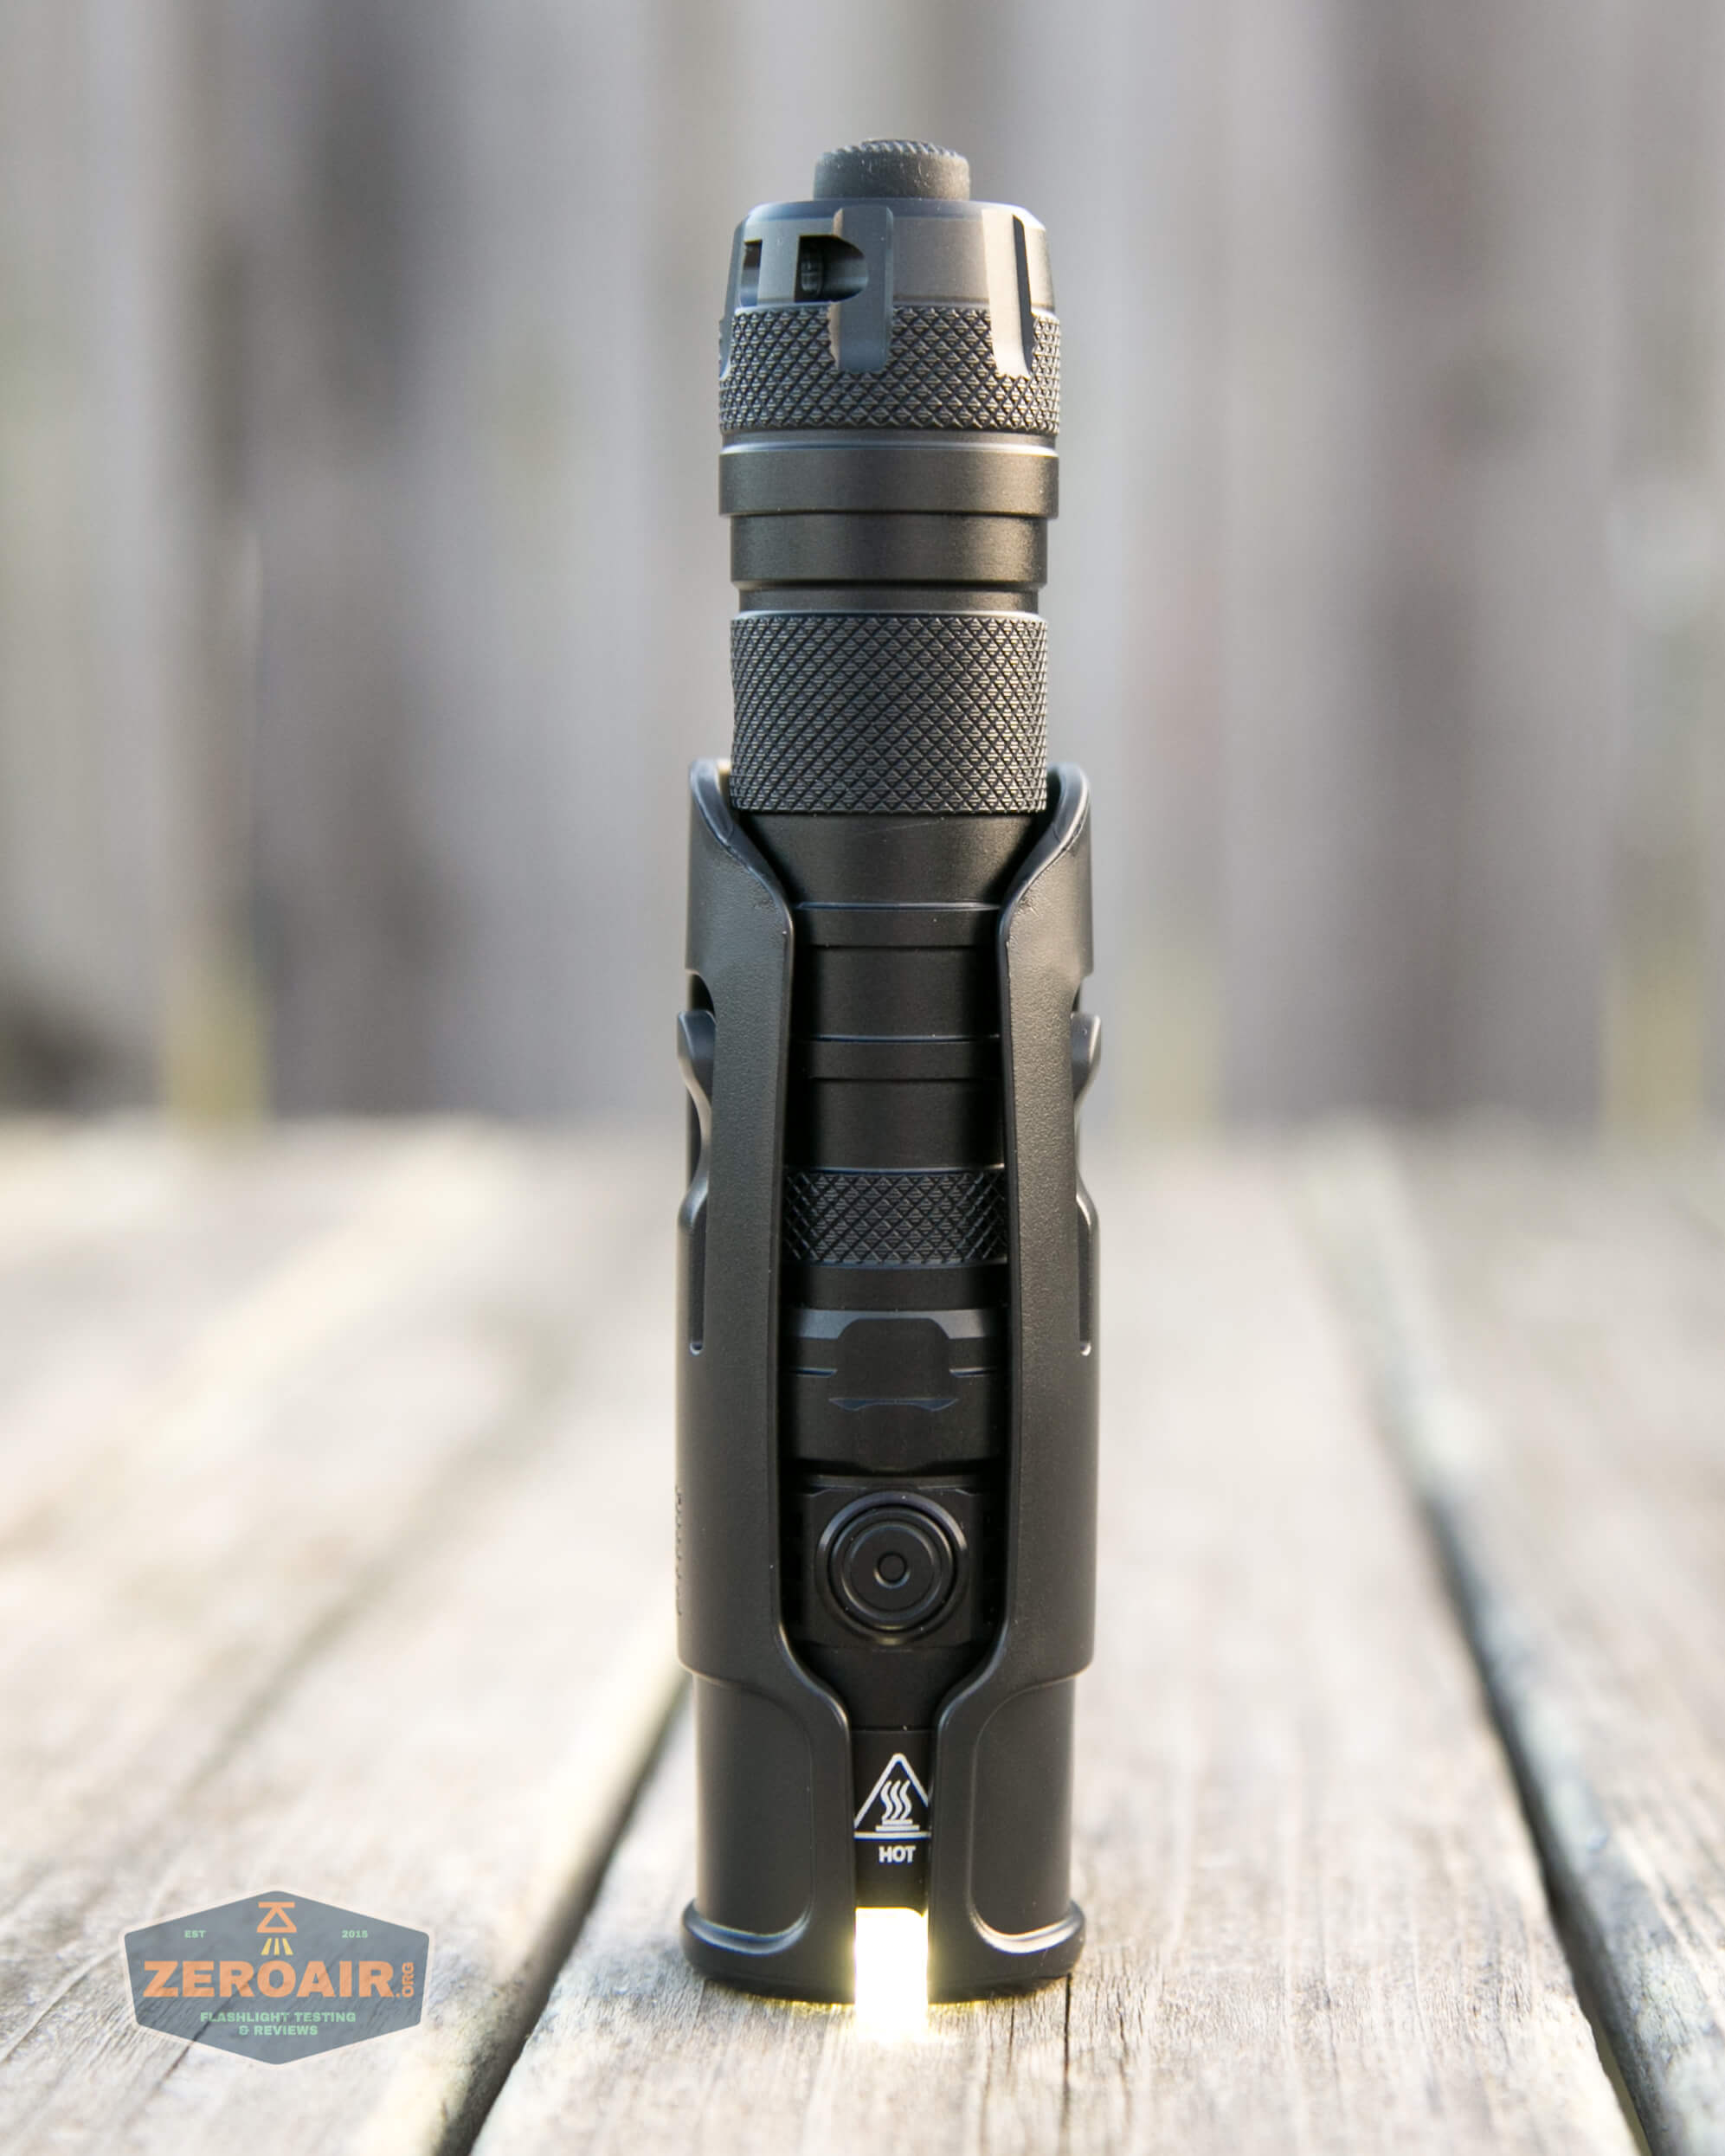 nitecore mh12s tactical flashlight in holster with light on